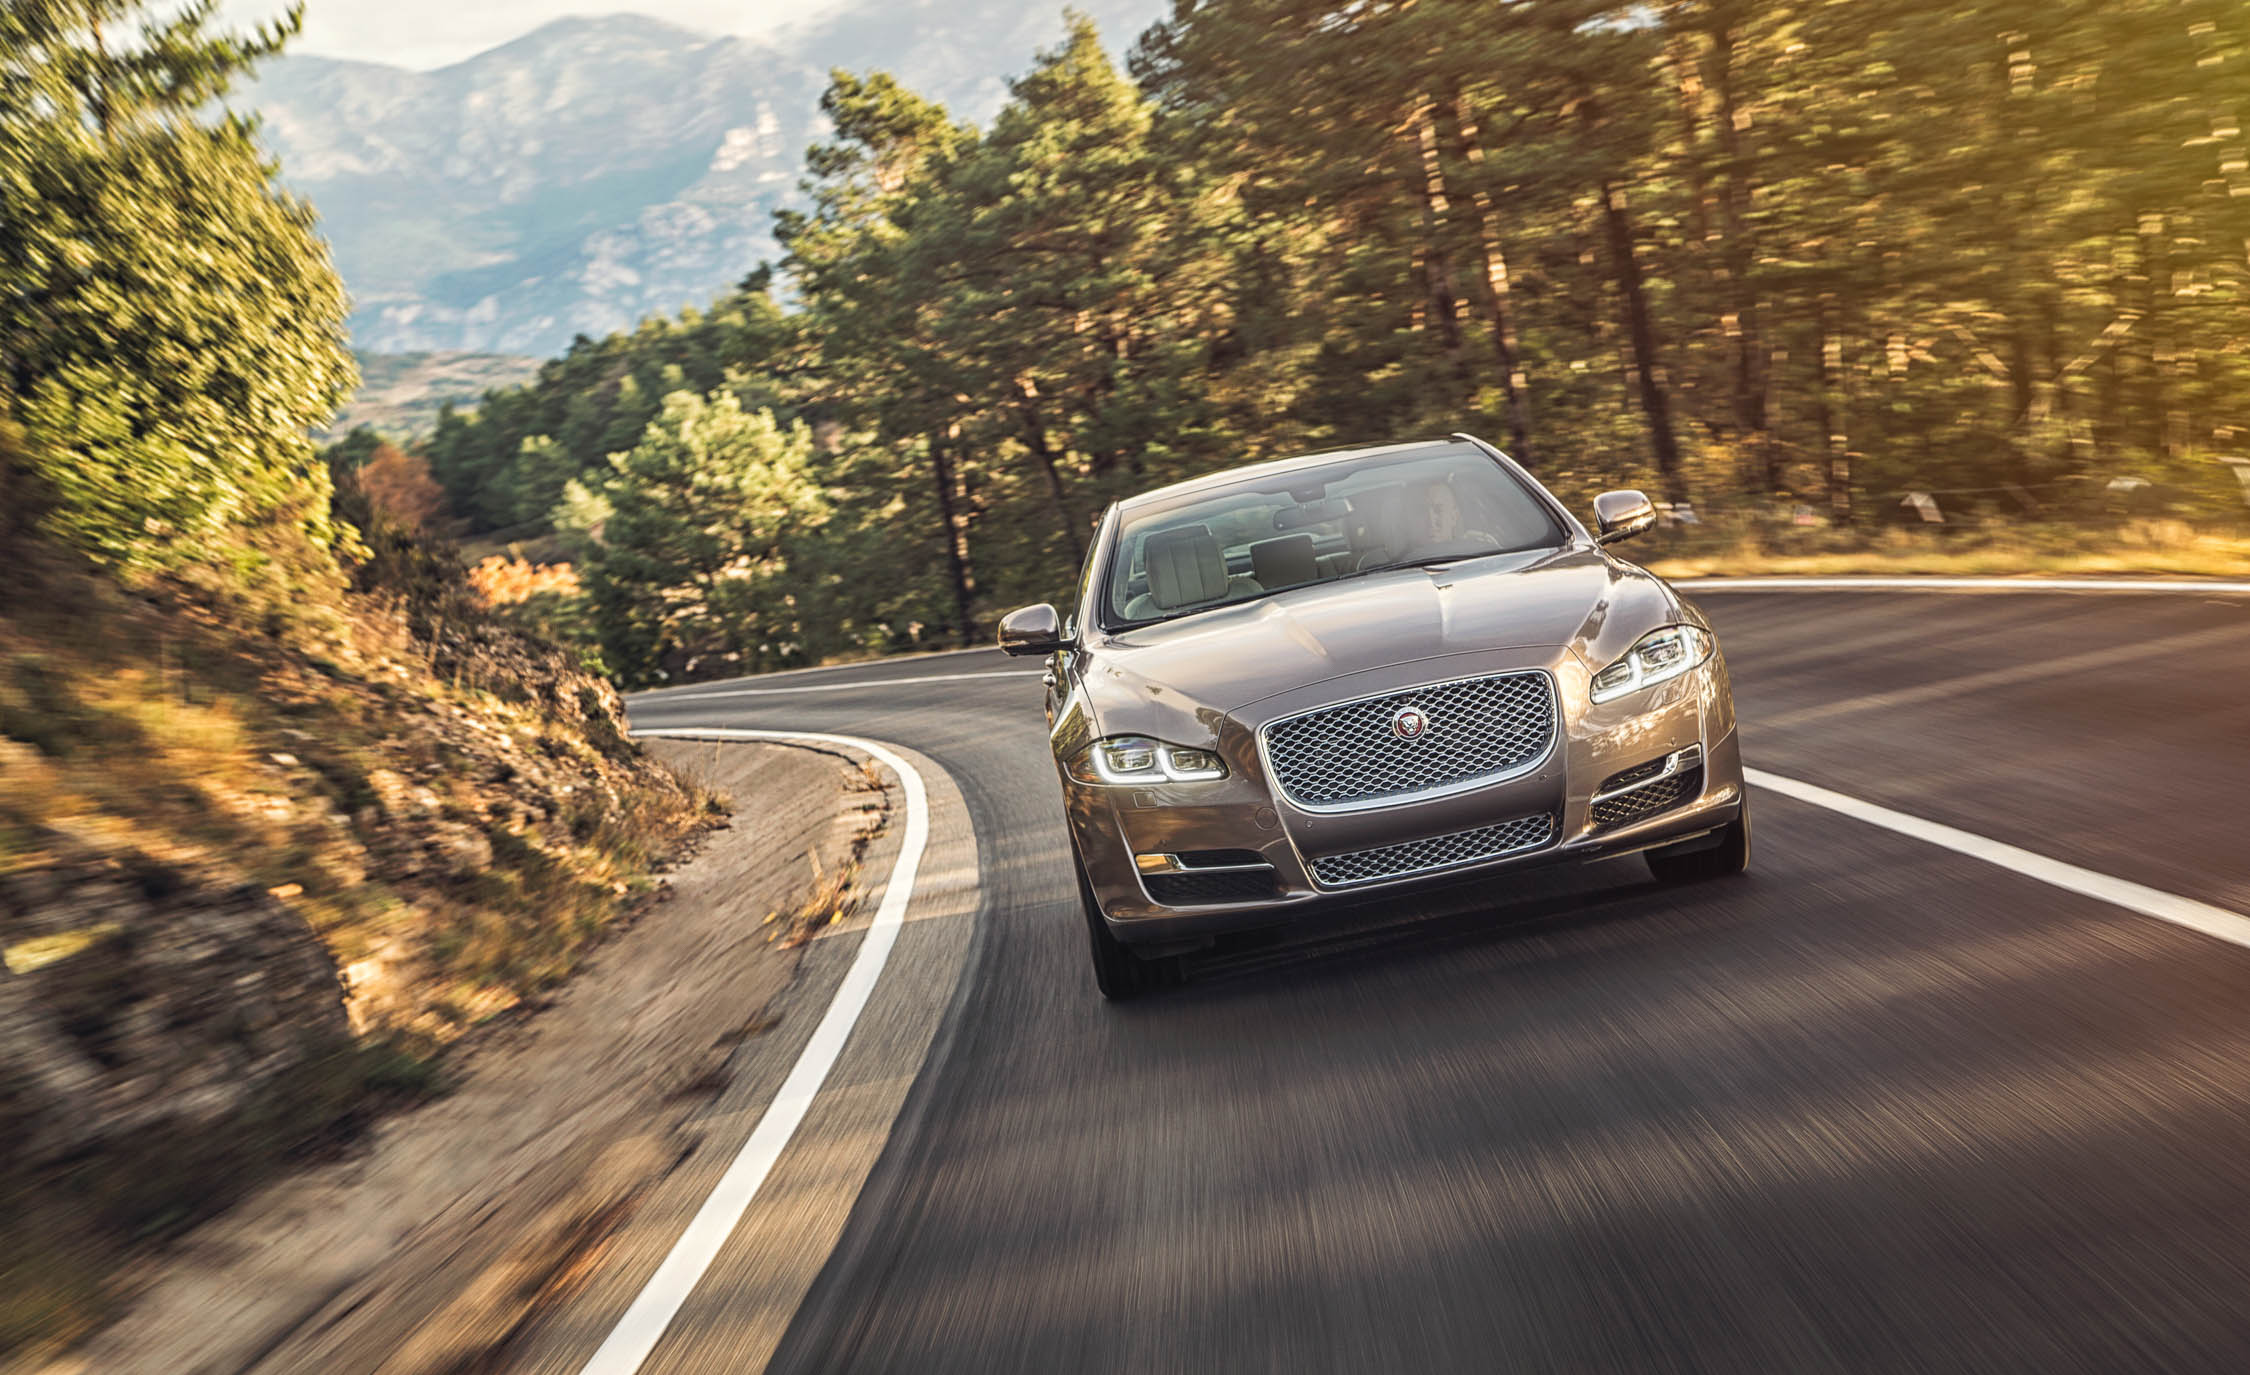 2016 Jaguar XJL (View 13 of 19)